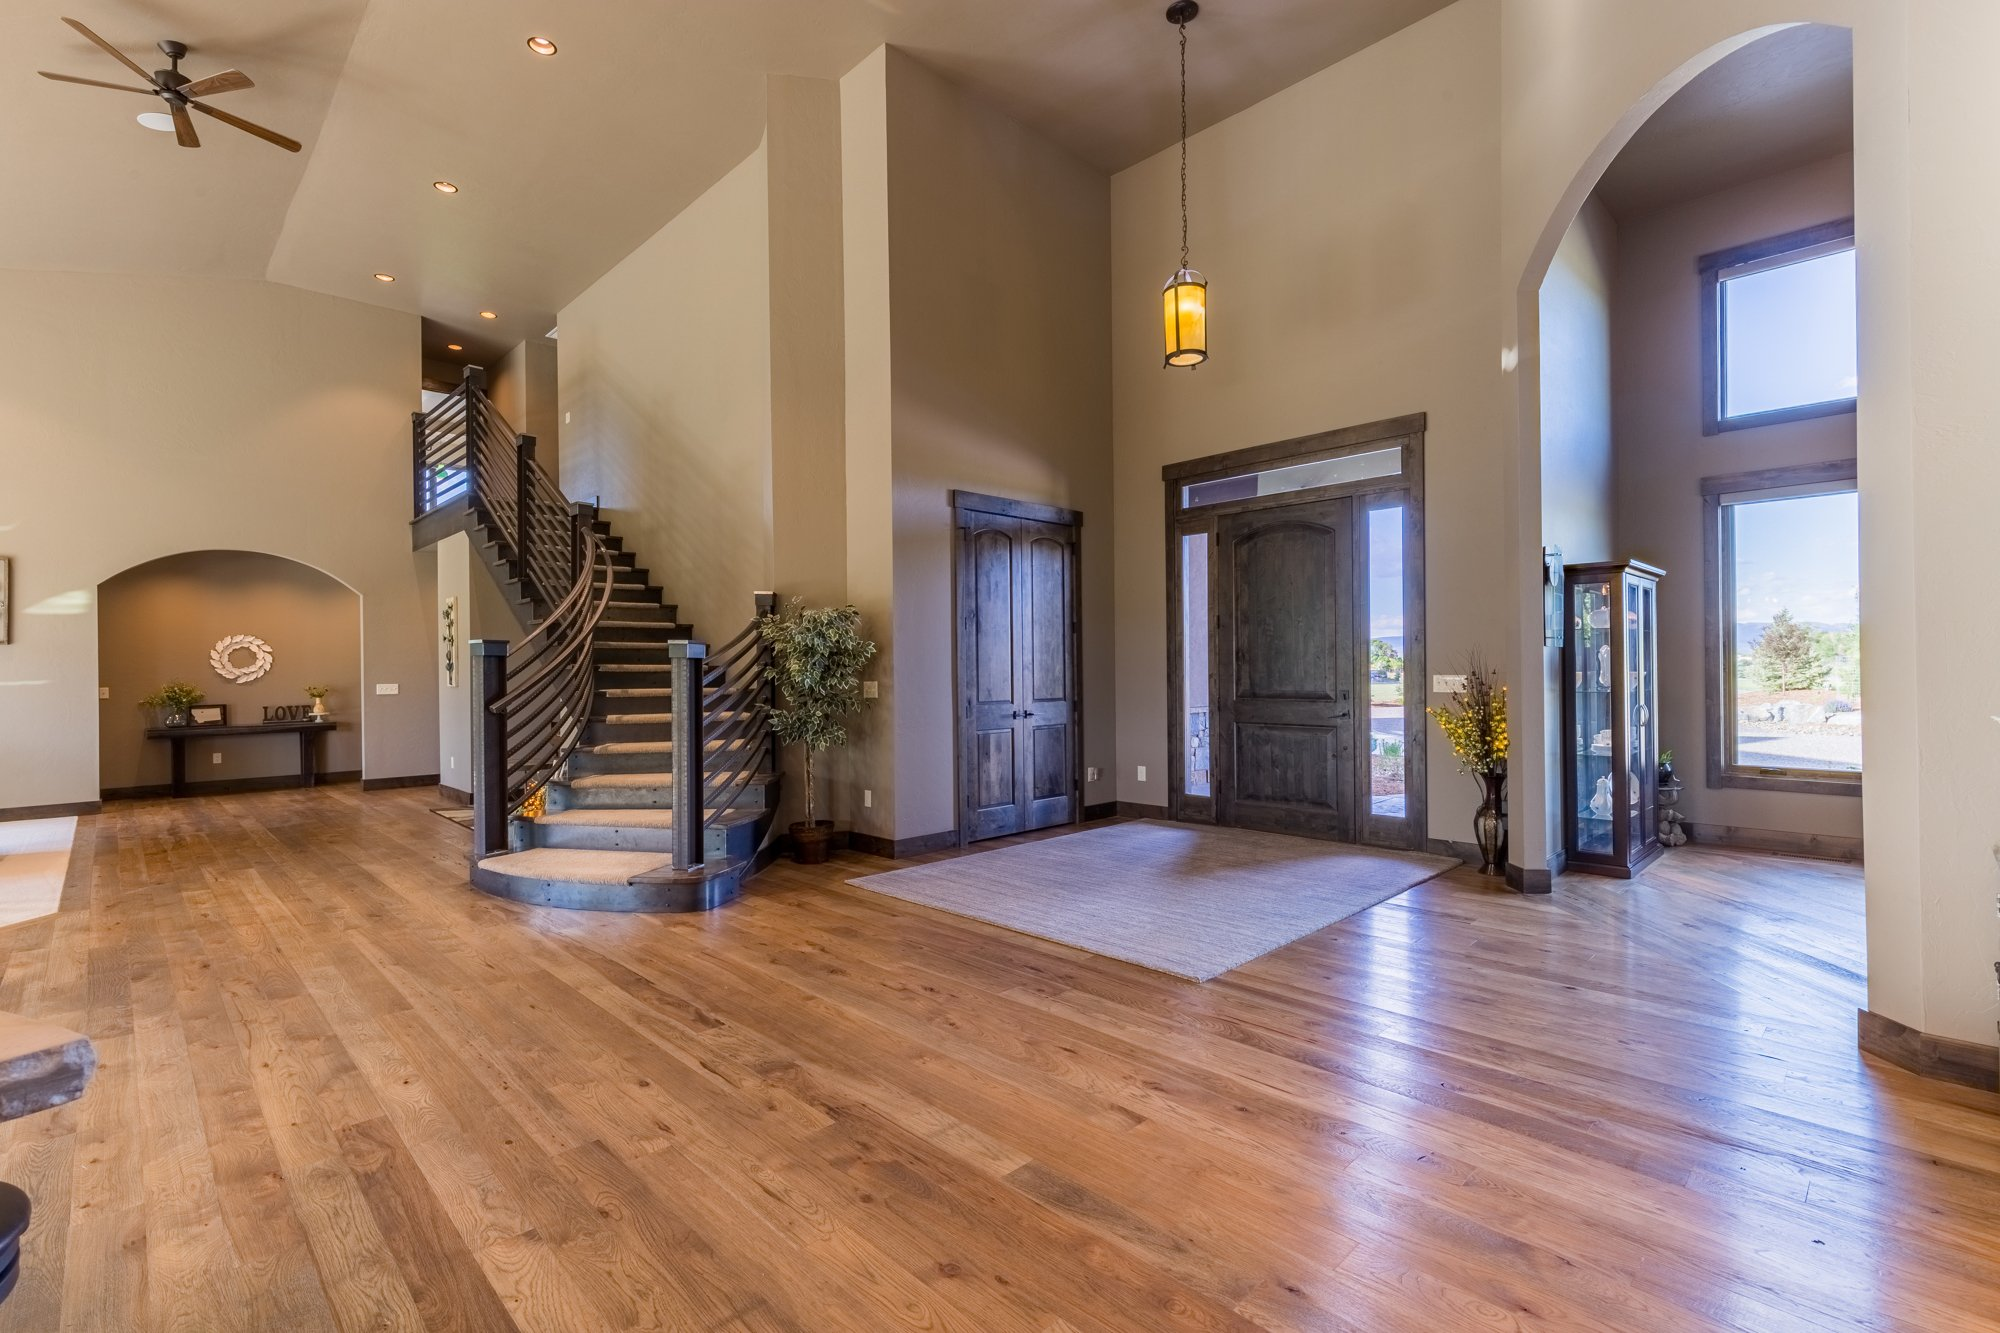 Entry Way - 15067 6140 Ln Montrose, CO 81403 - Atha Team Luxury Real Estate